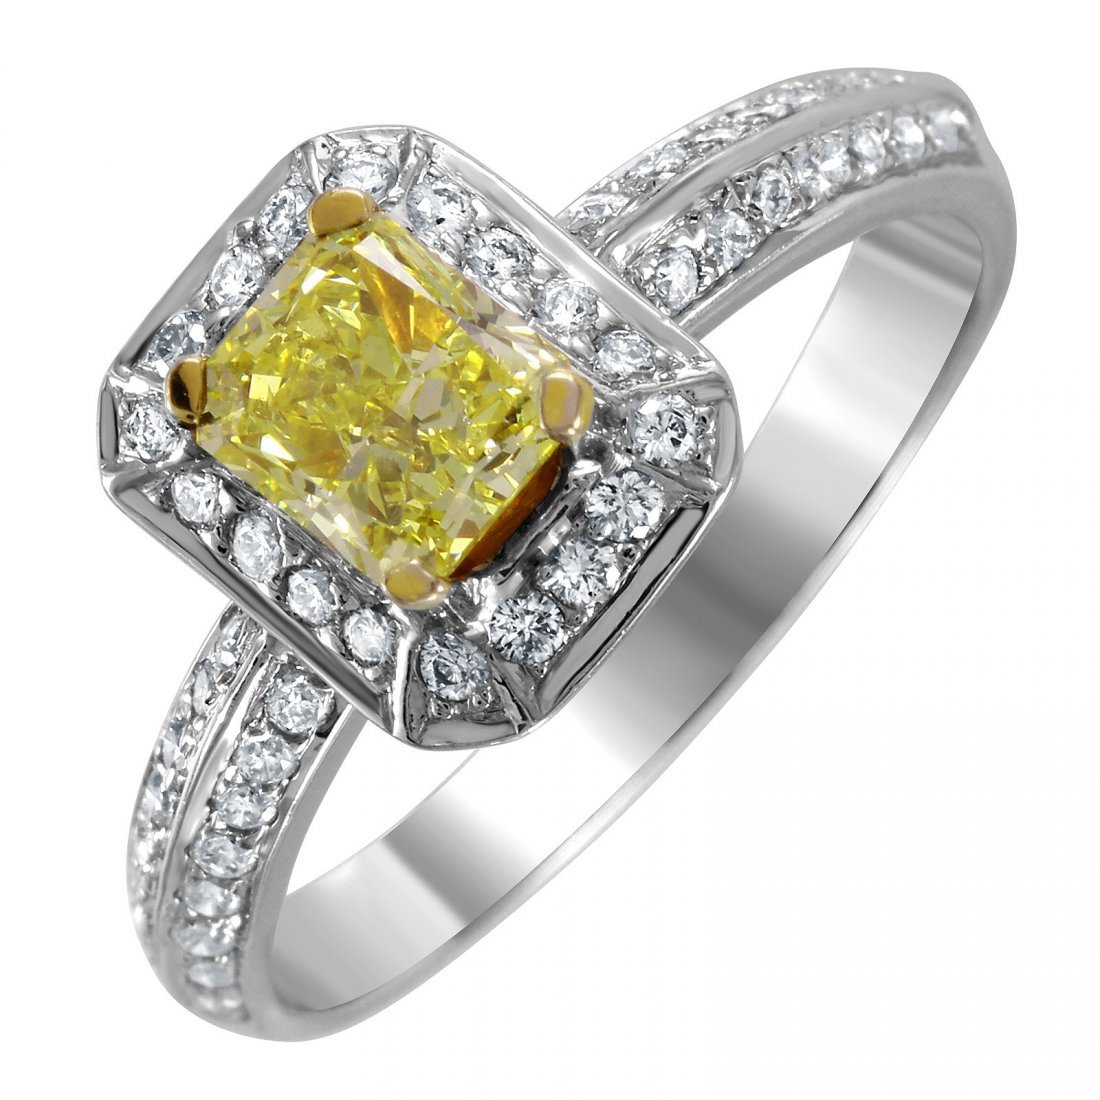 14KT White and Yellow Gold Diamond Engagement Ring